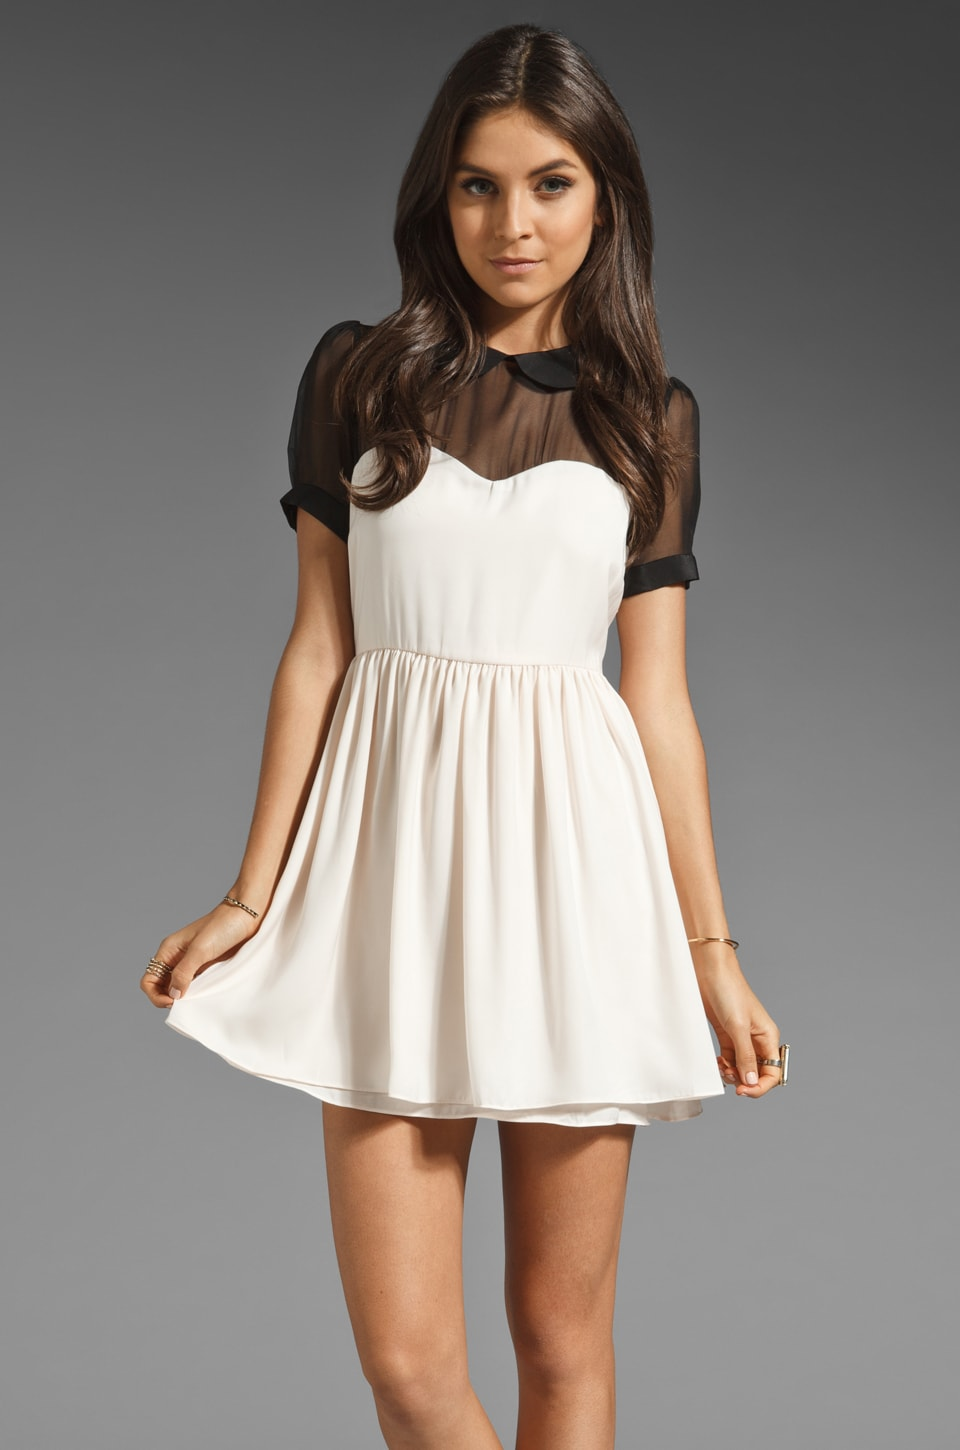 Pencey Standard x Jessica Hart Sweetheart Dress in Ivory